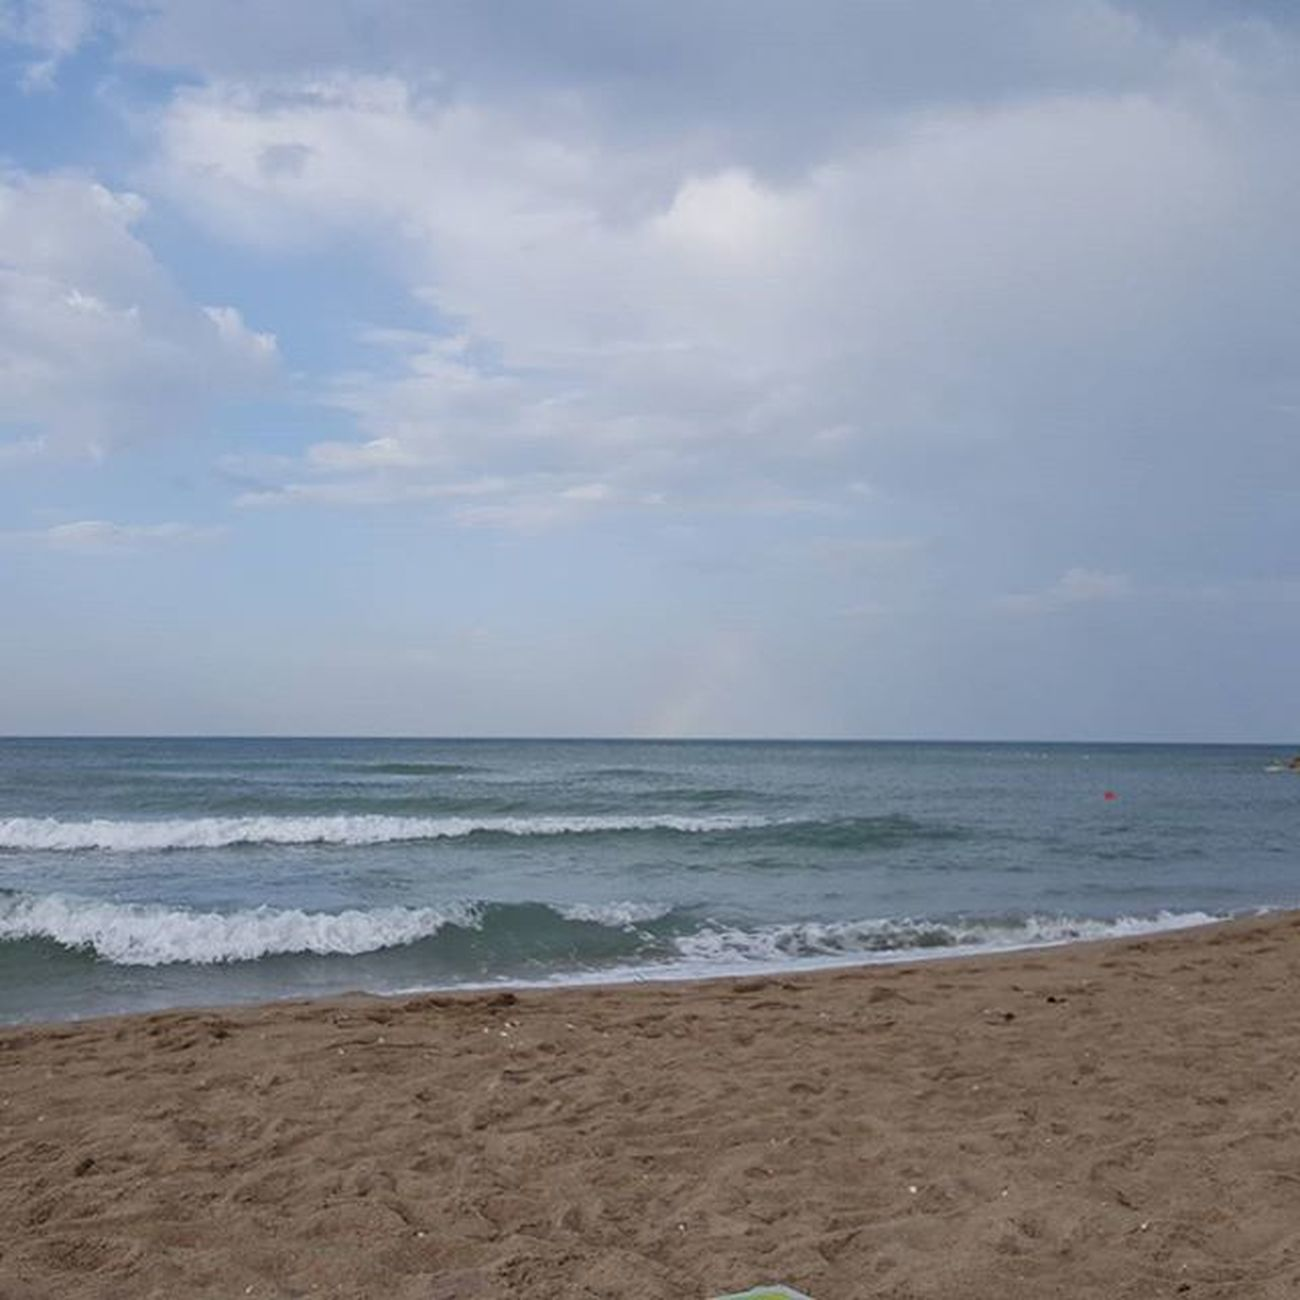 Seaside after the storm... and the rainbow at the bottom.. Seasideitaly Seaside Quietafterthestorm Rainbowonthesea Rainbow Summer2015 Estate2015 Southernitaly Mare Mareadriatico Puglia Summertime Volgopuglia Provinciadifoggia Marinadichieuti Volgofoggia Thisispuglia Lovespuglia Loves_puglia